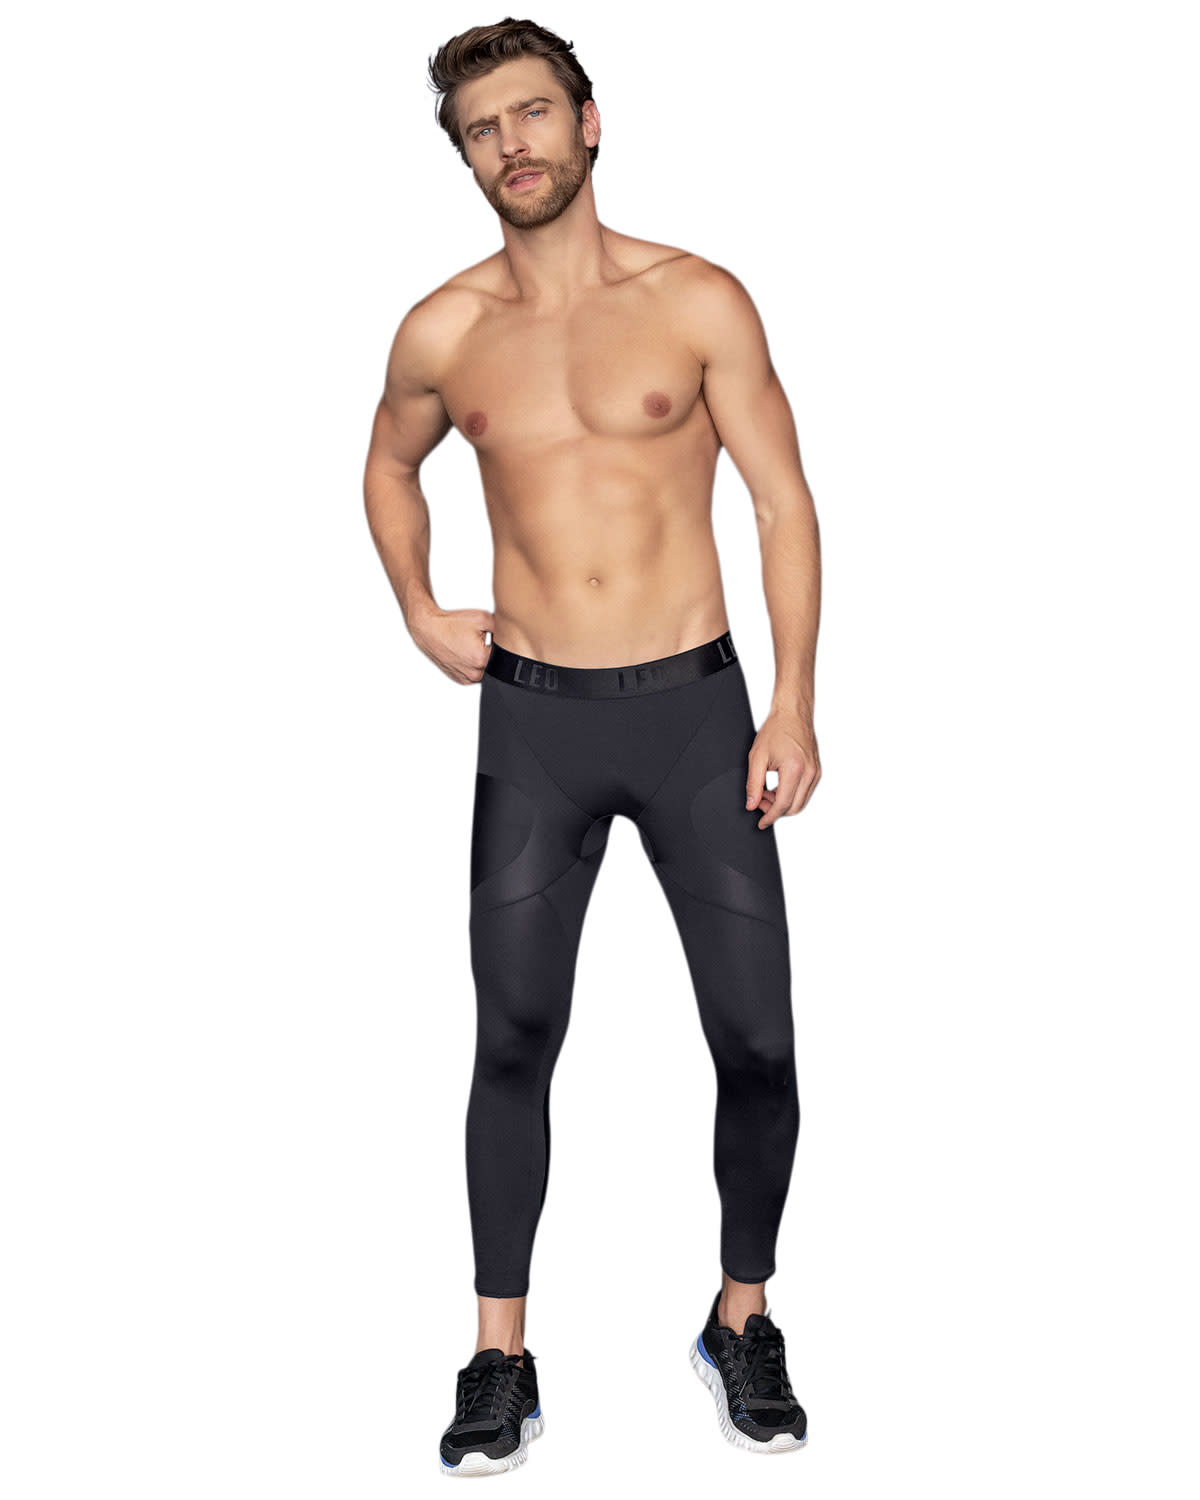 Men's ActiveLife Seamless Moderate Compression Legging